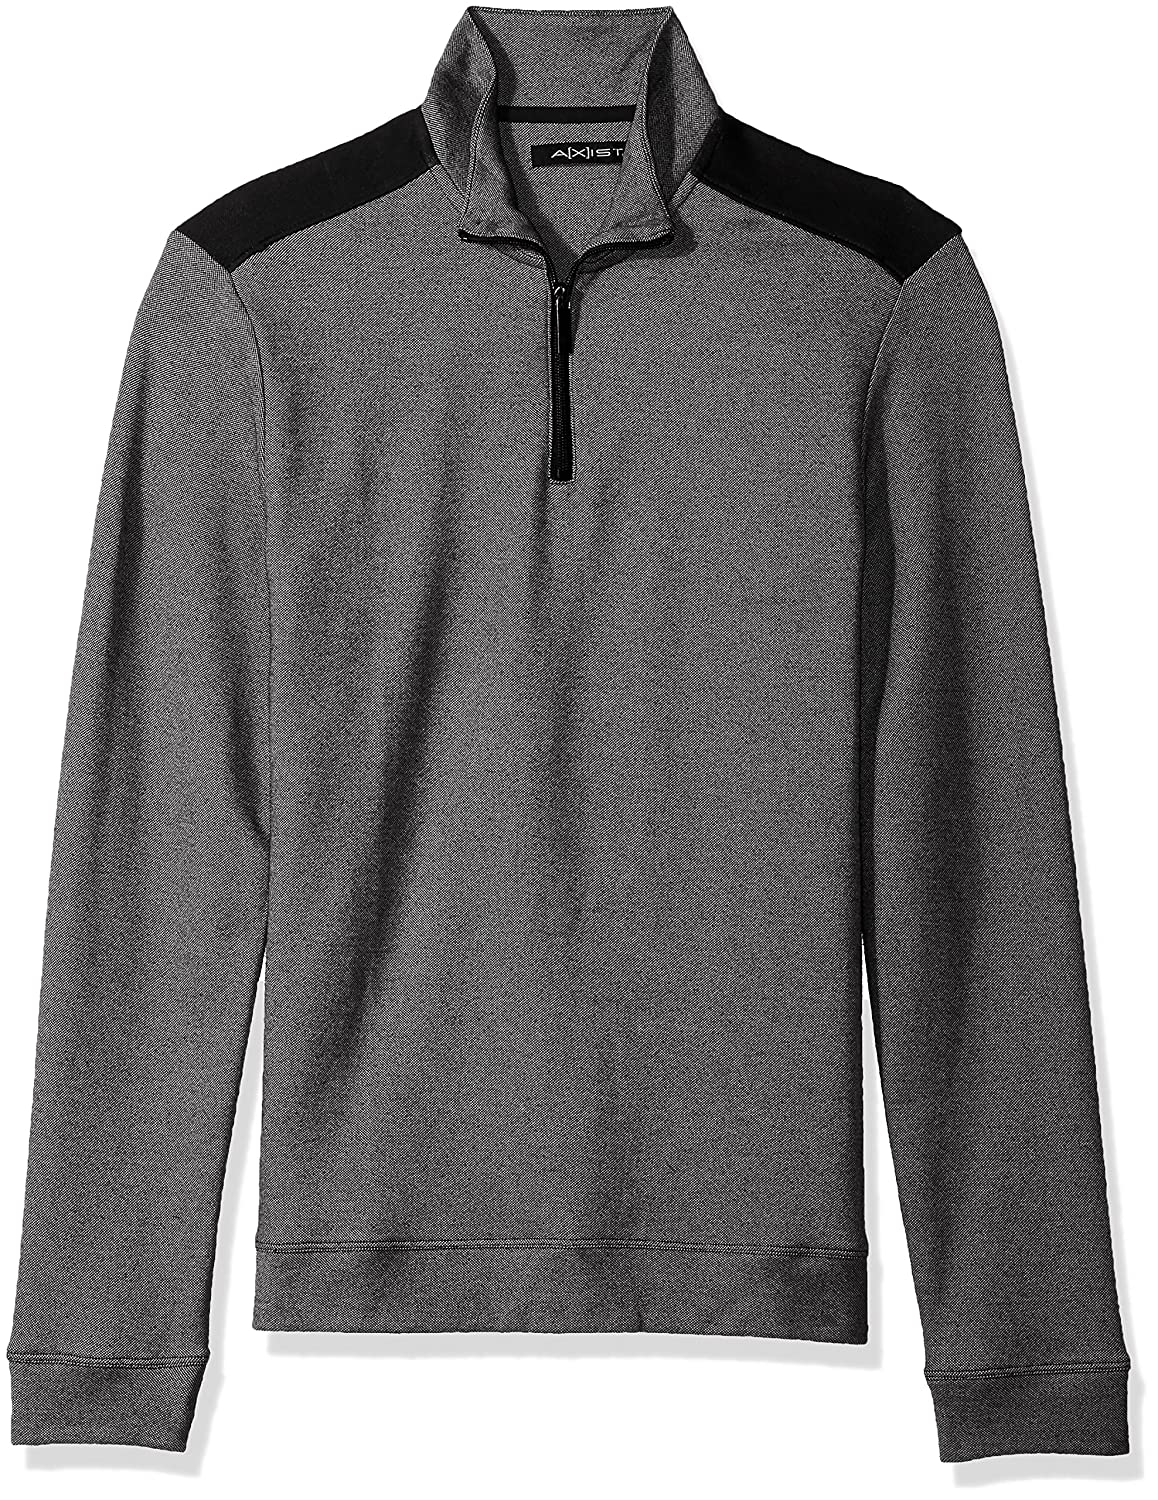 AXIST Mens Long Sleeve Pique 2 Tone Quarter Zip Sweater